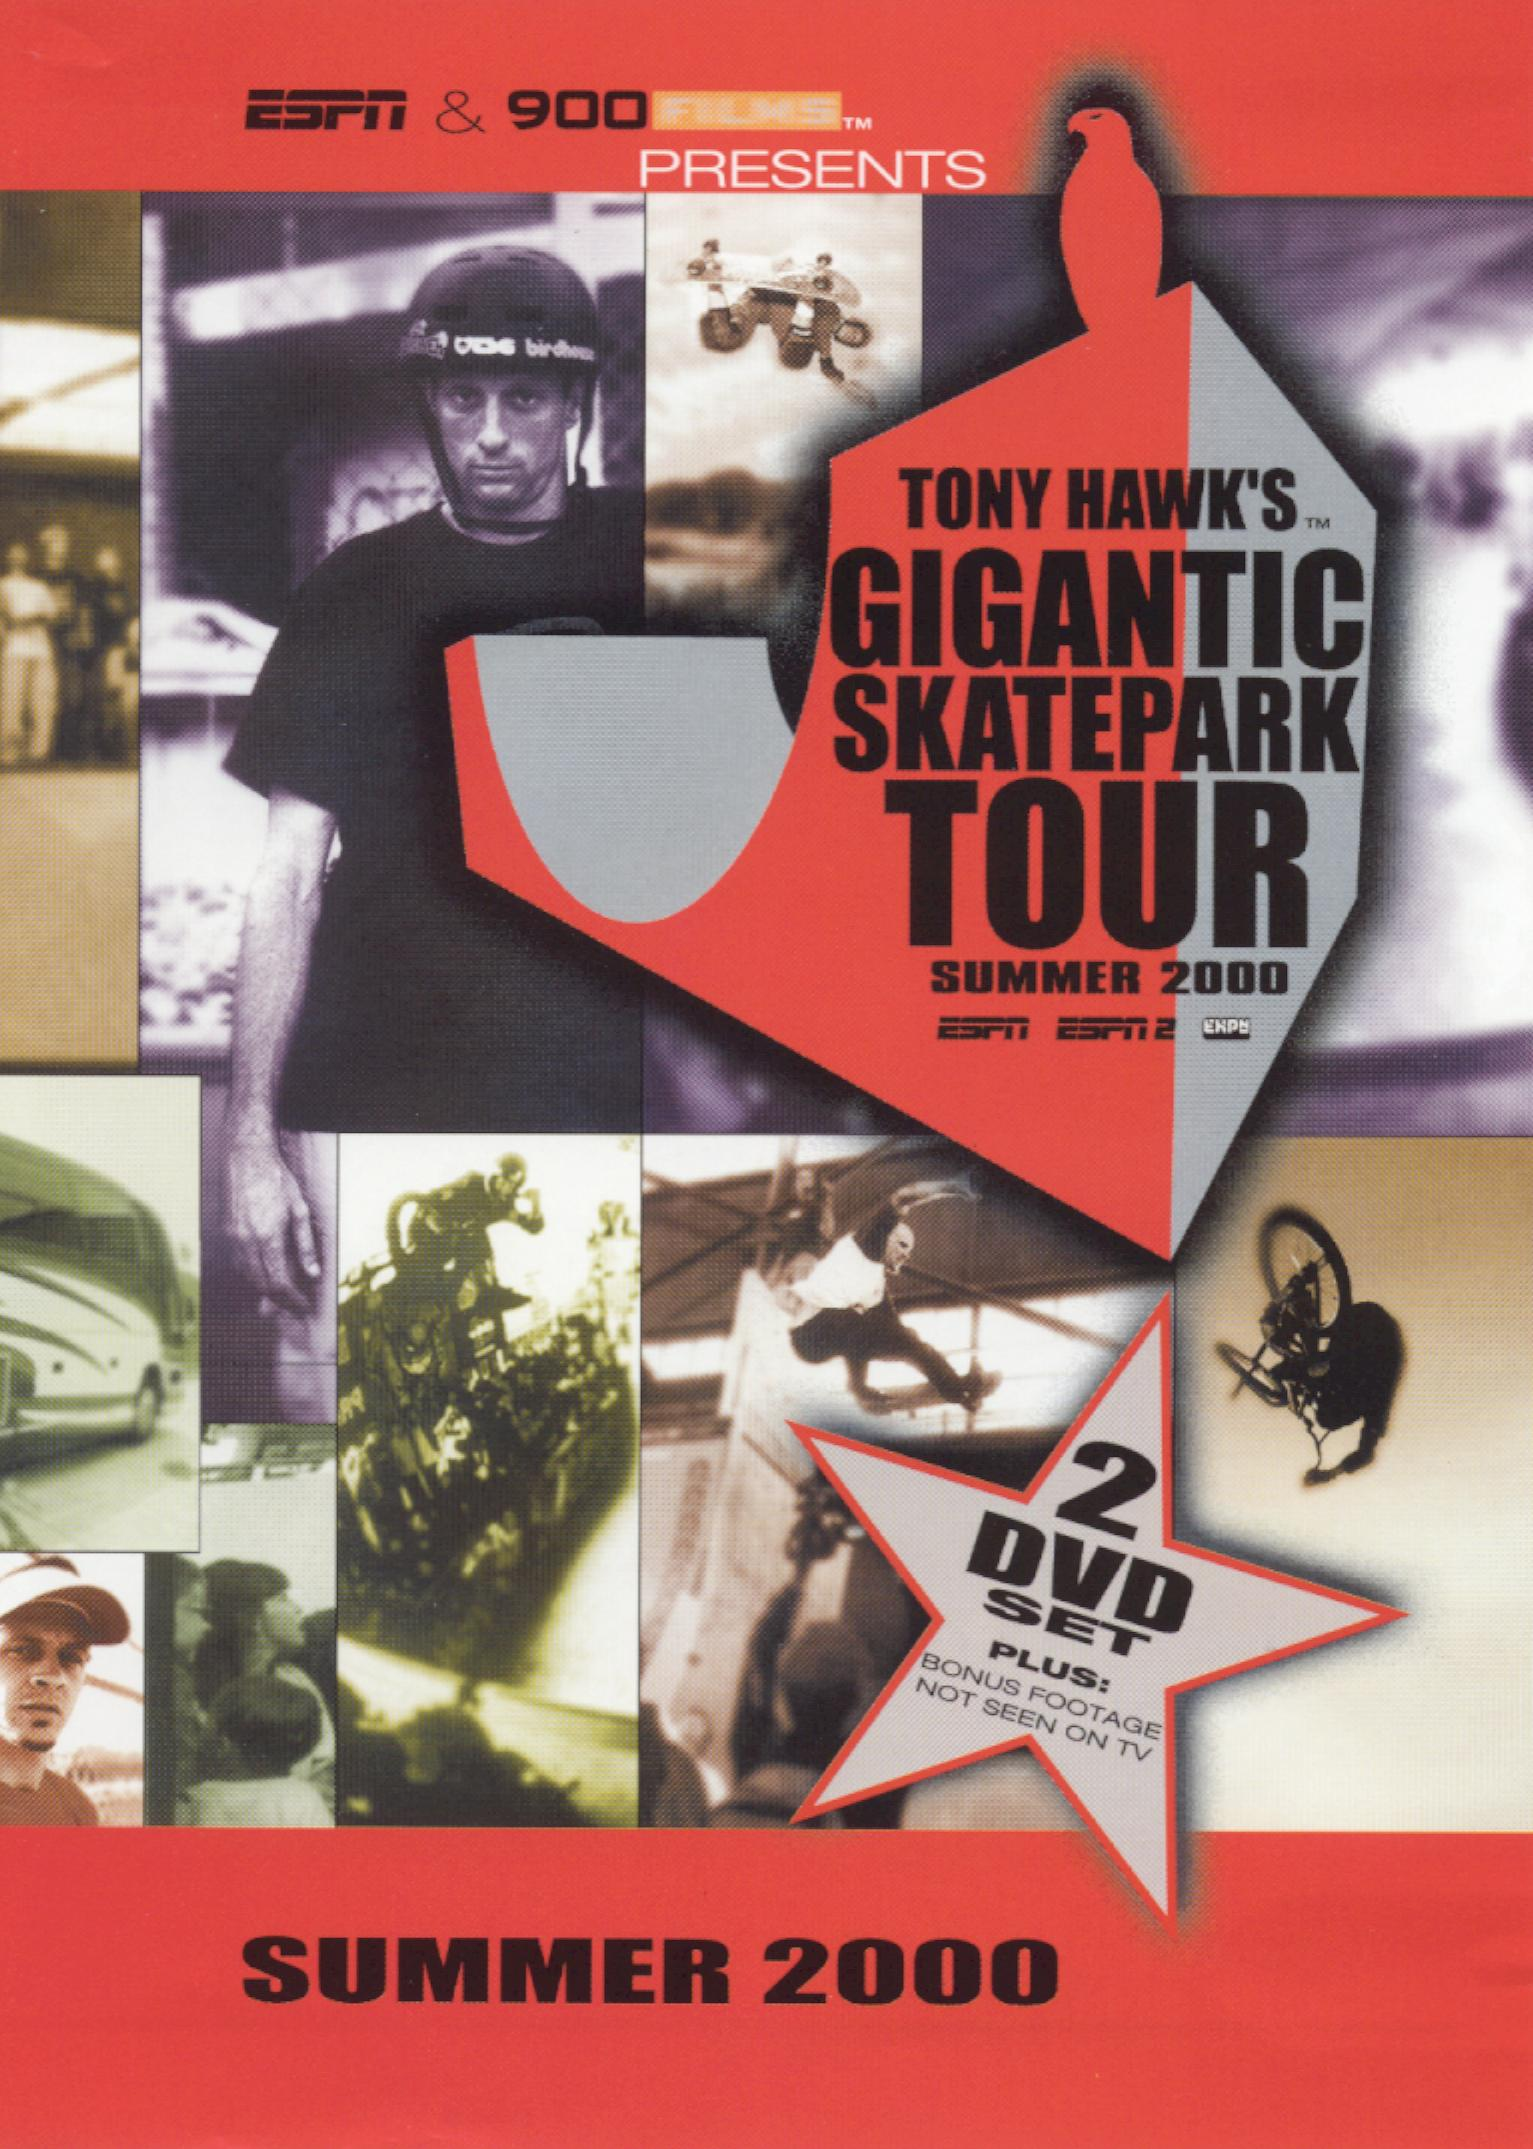 Tony Hawk's Gigantic Skatepark Tour: Summer 2000